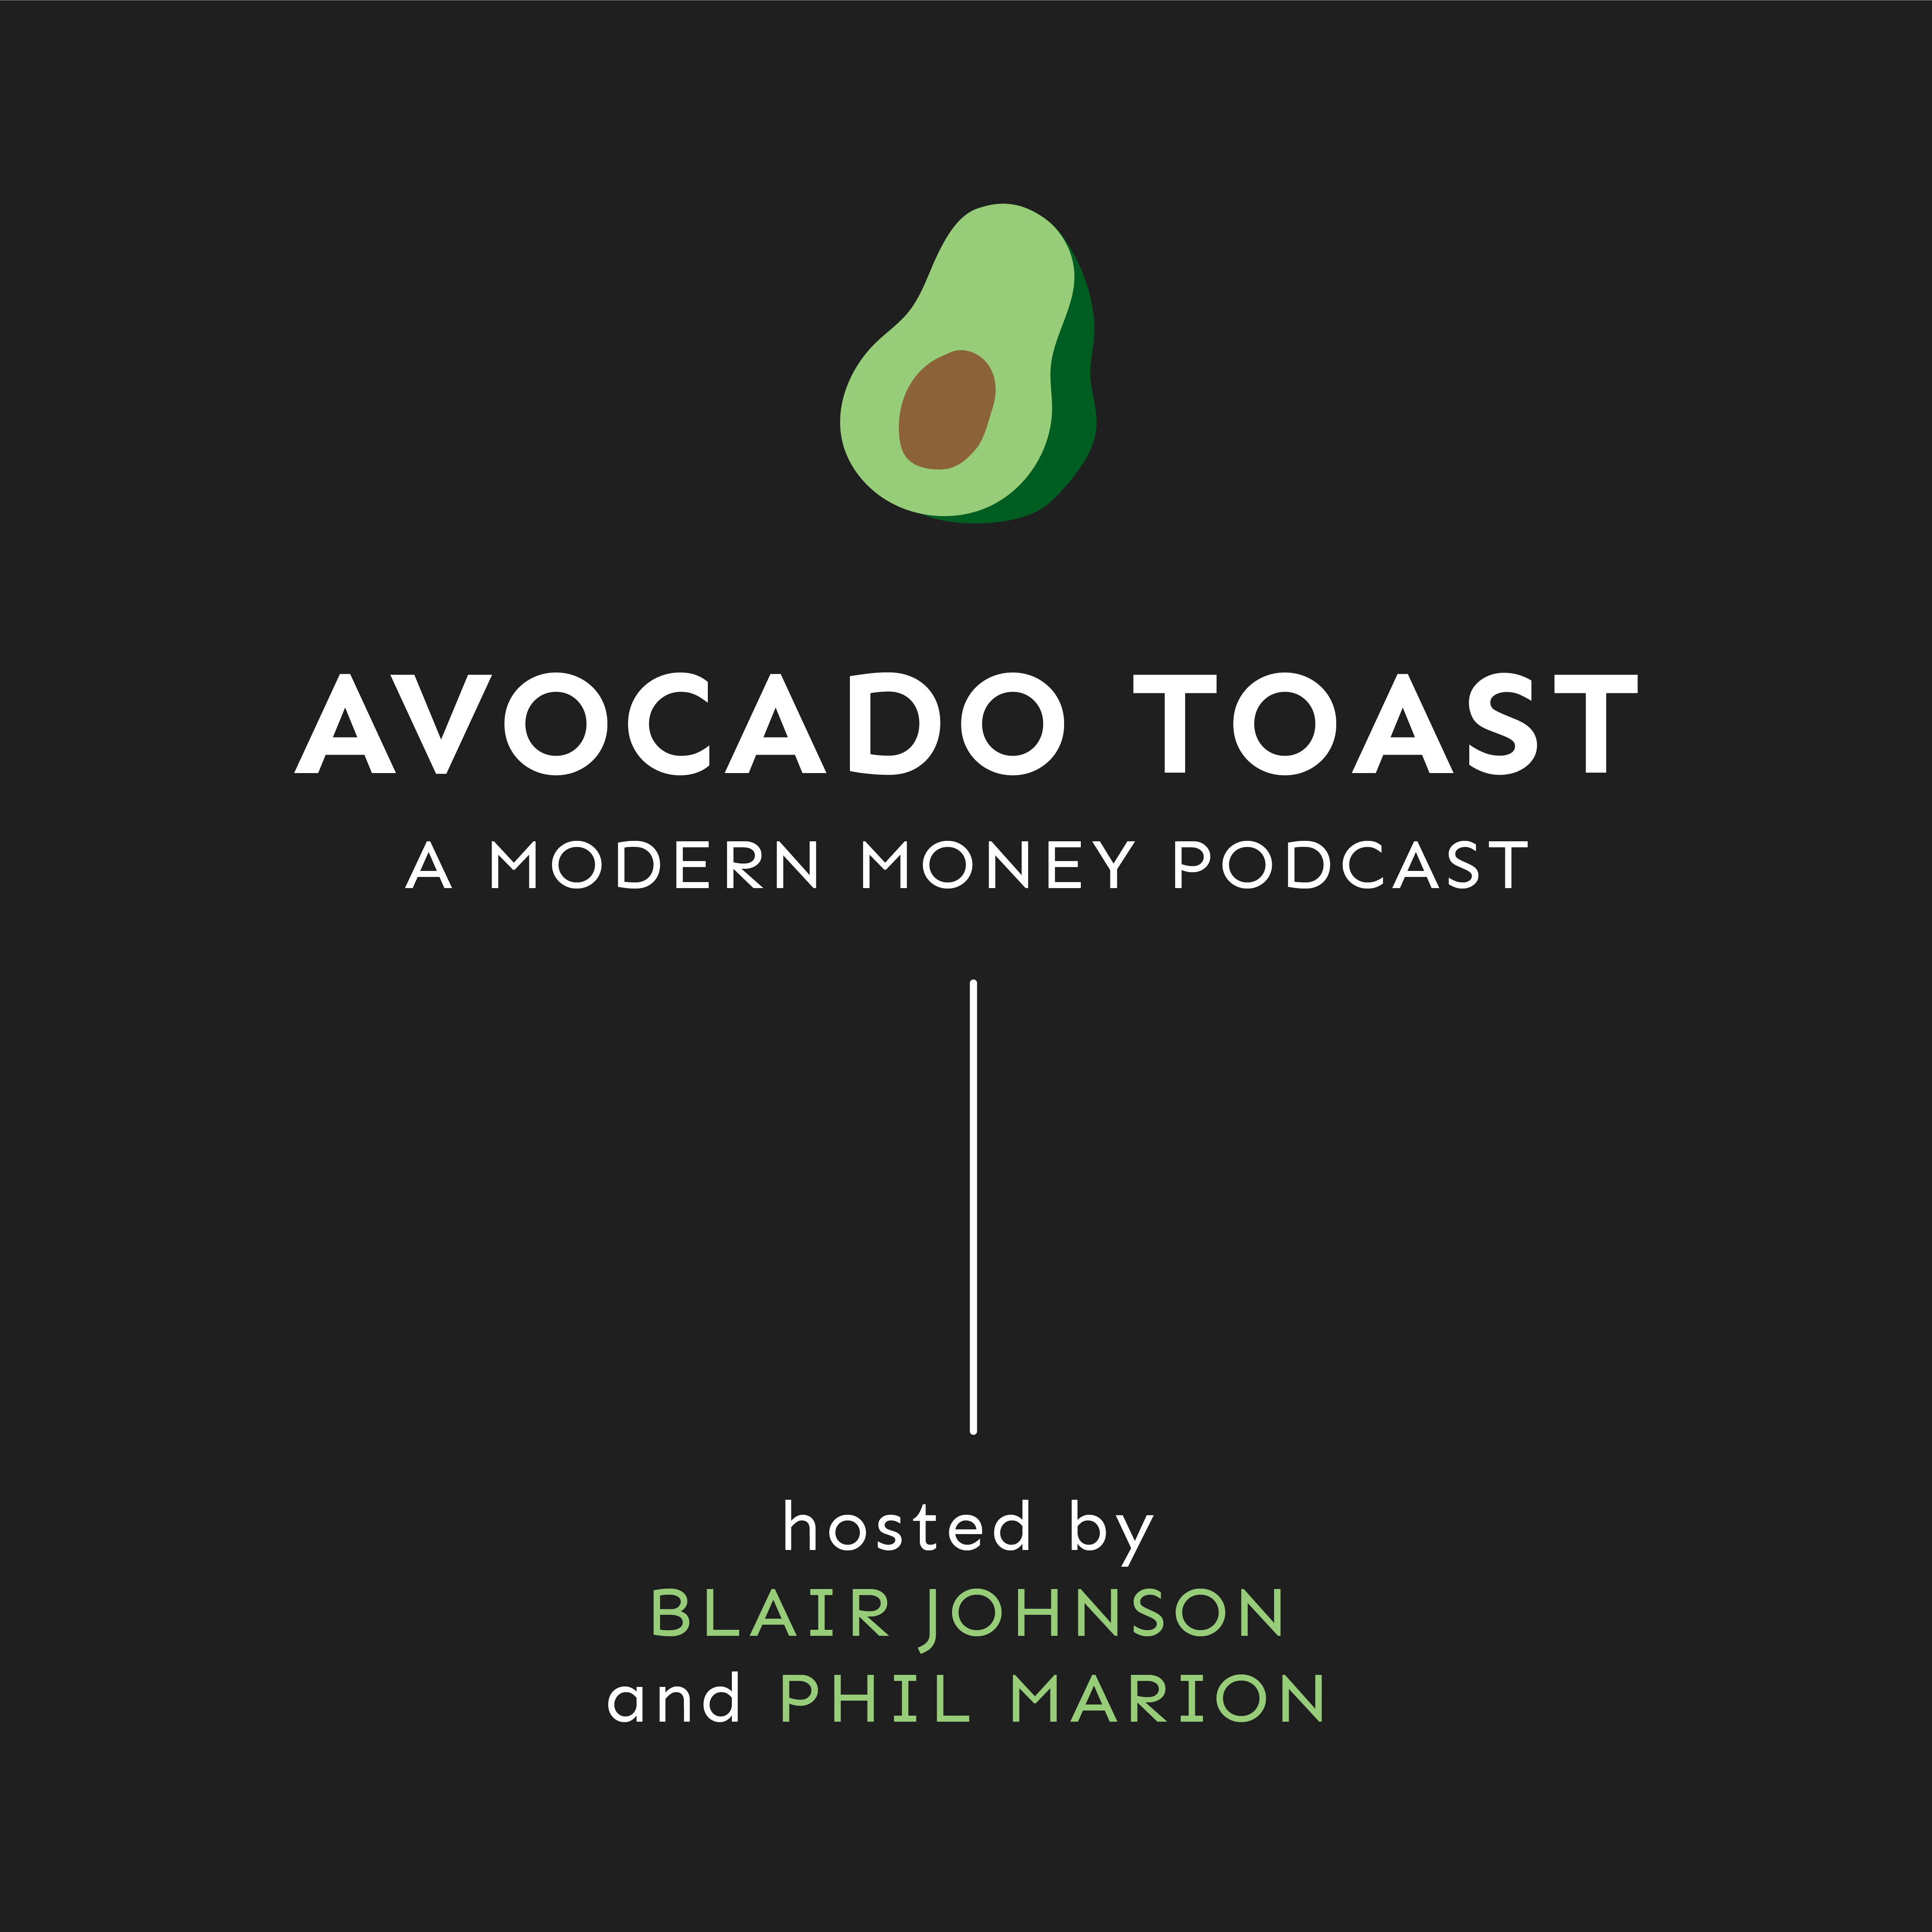 Avocado Toast – Episode 1 – The importance of financial literacy and planning.